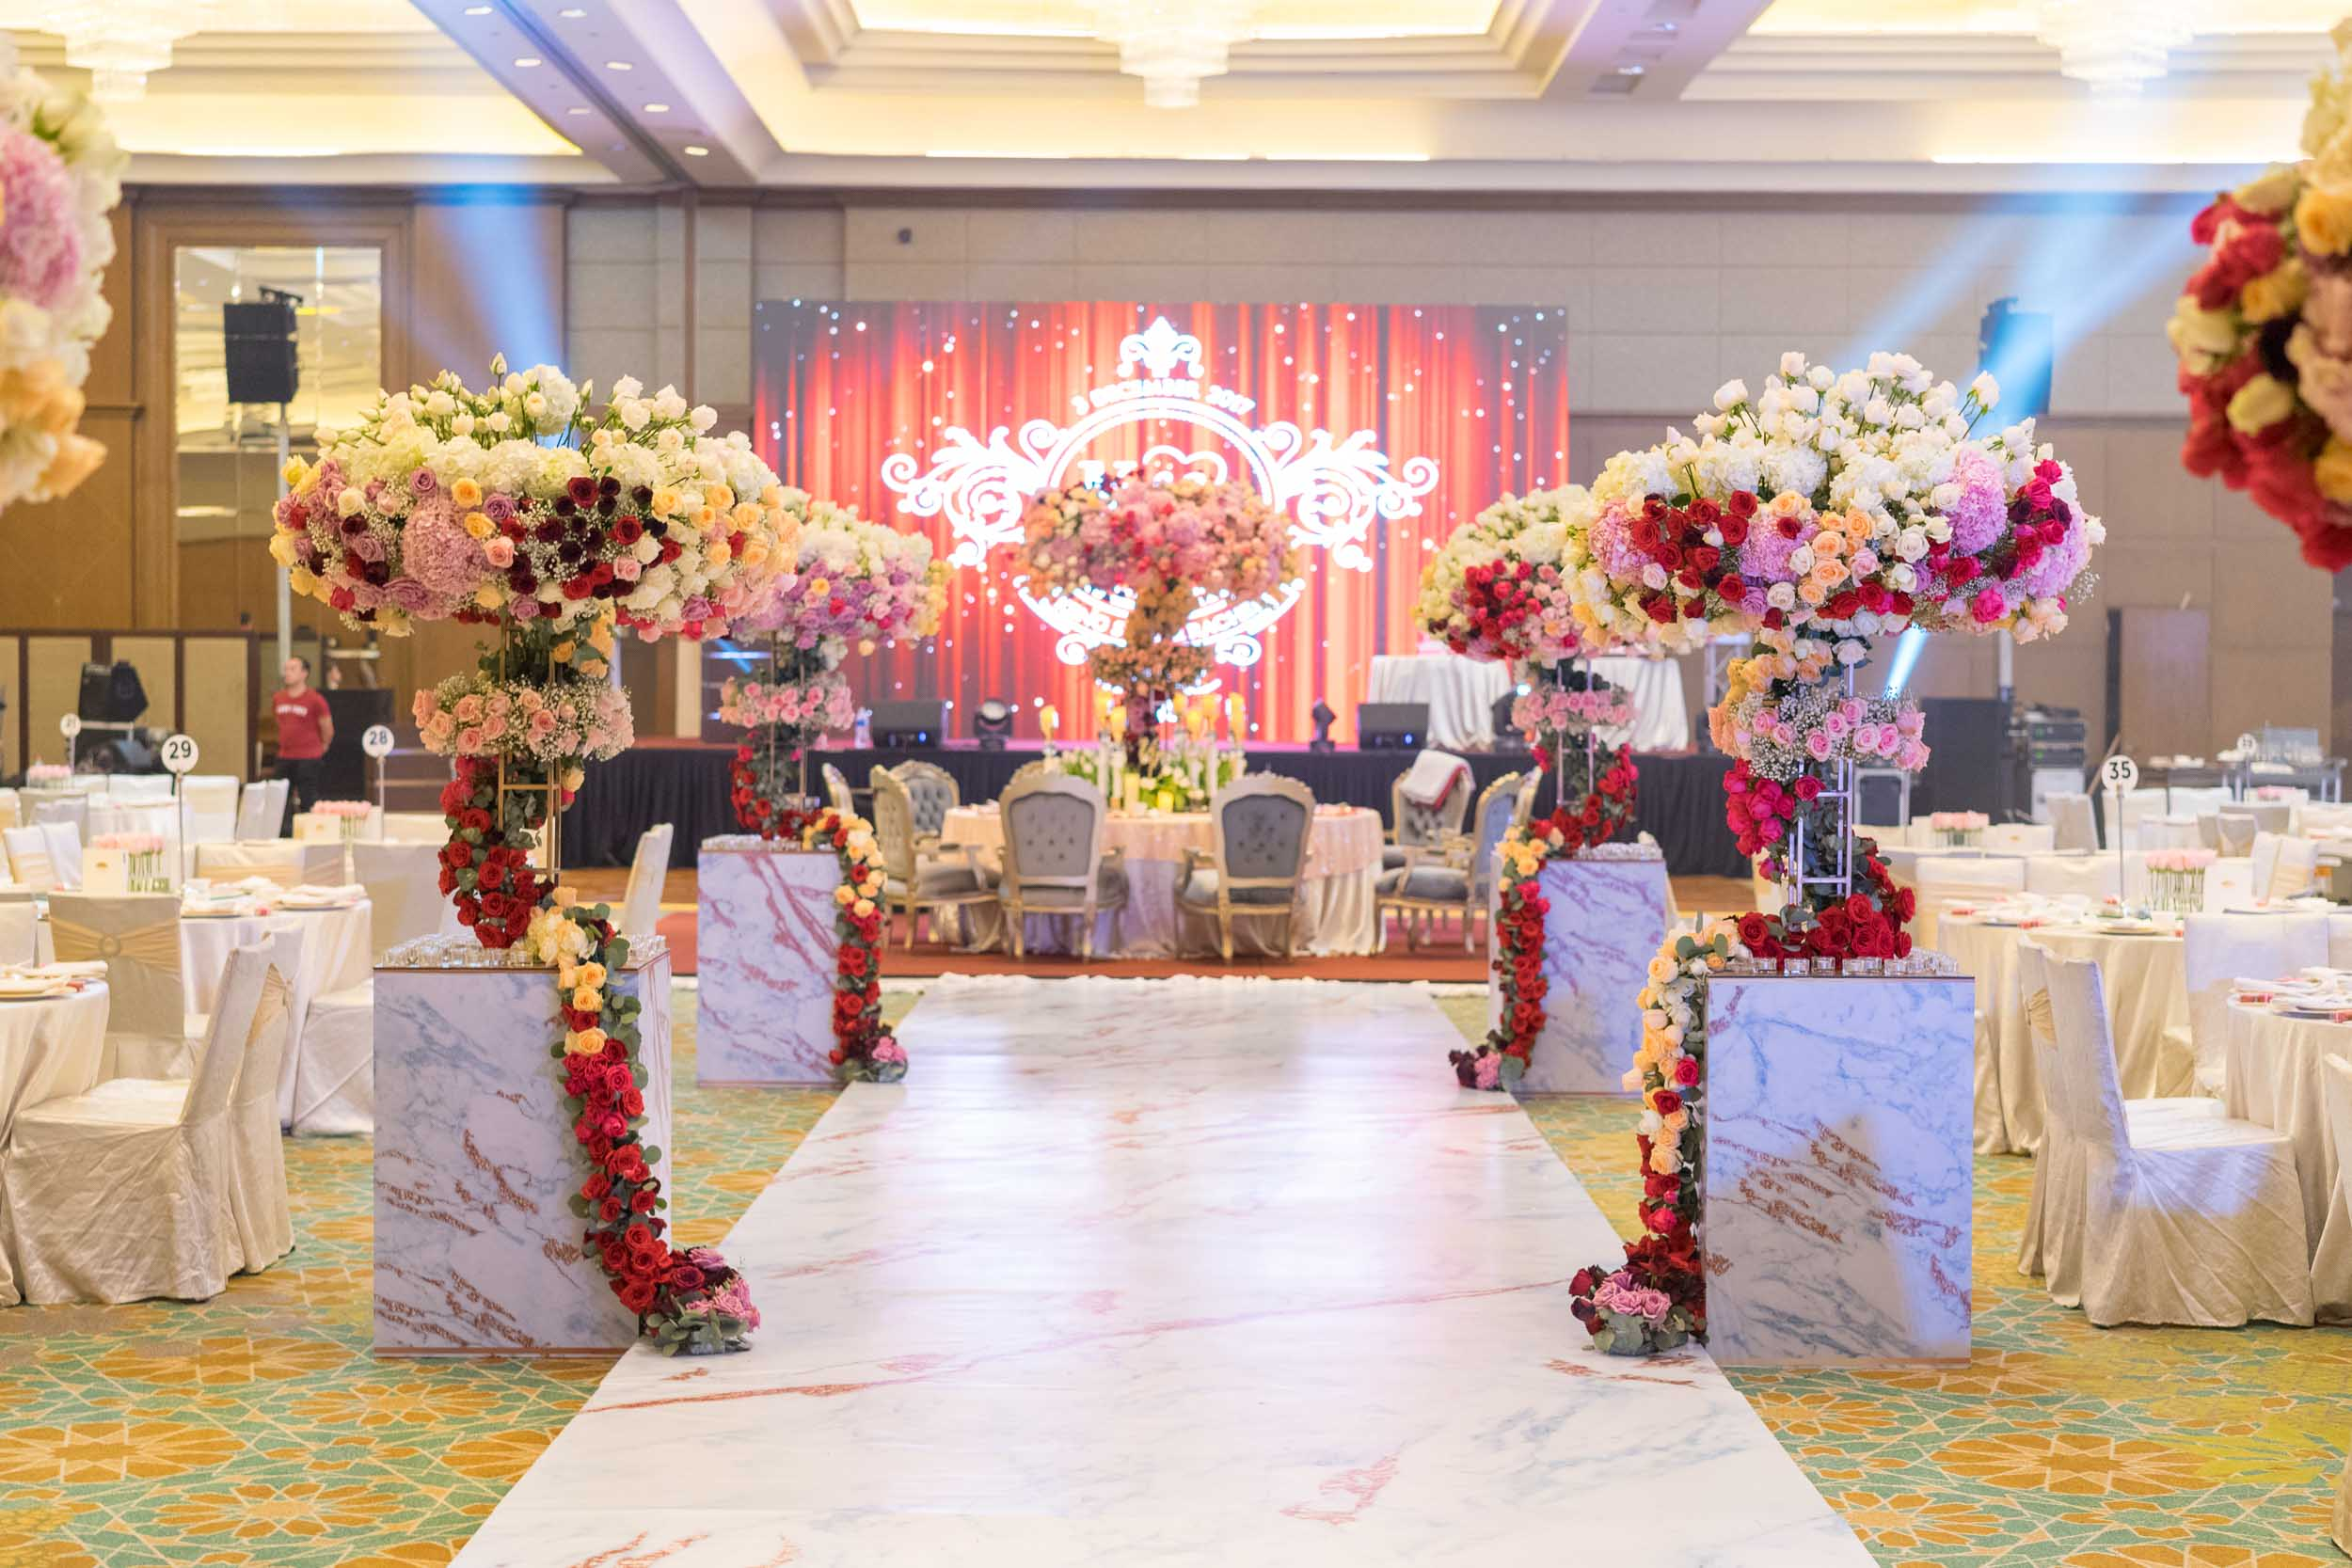 wedding decorations stunning on decor with decoration ideas reception awesome for